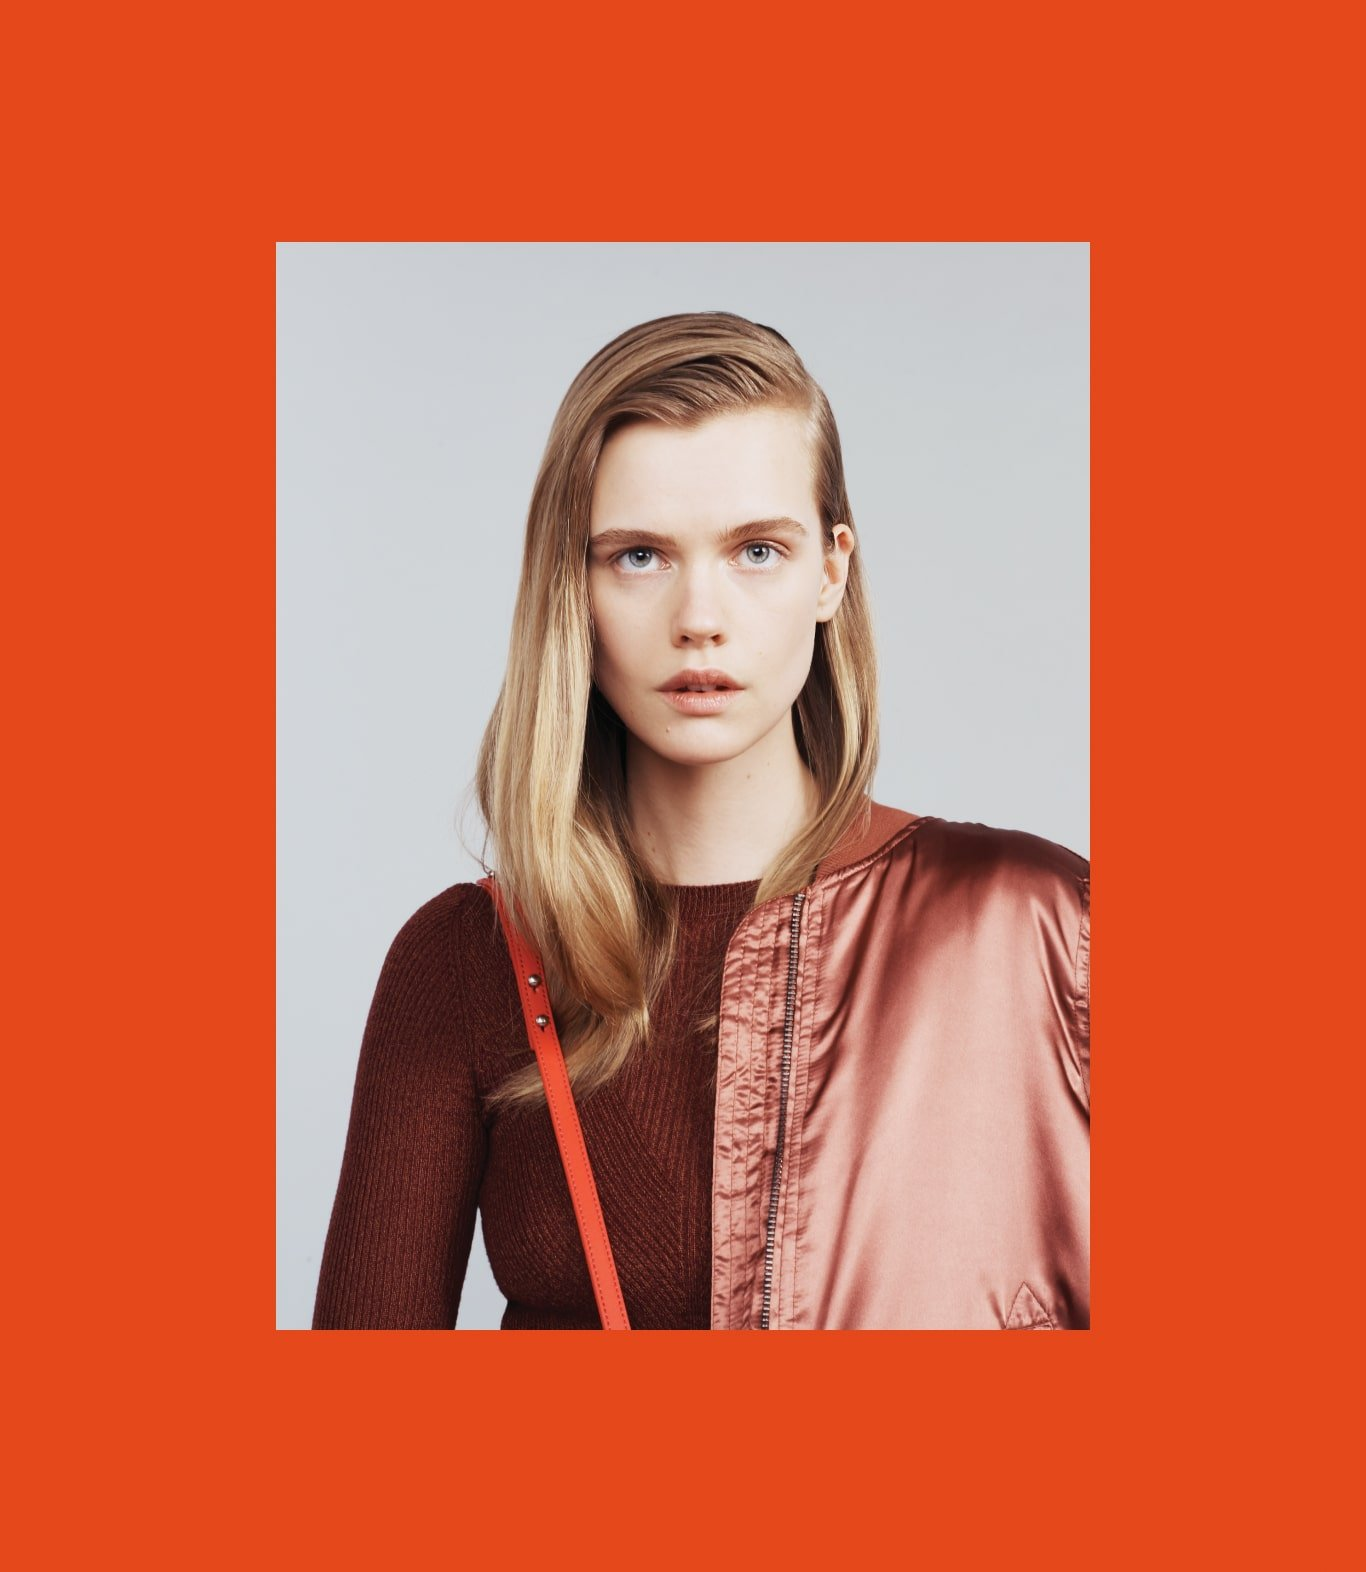 Blonde model wearing red bomber jacket and red Loeffler Randall cross-body purse. Art direction by RoAndCo